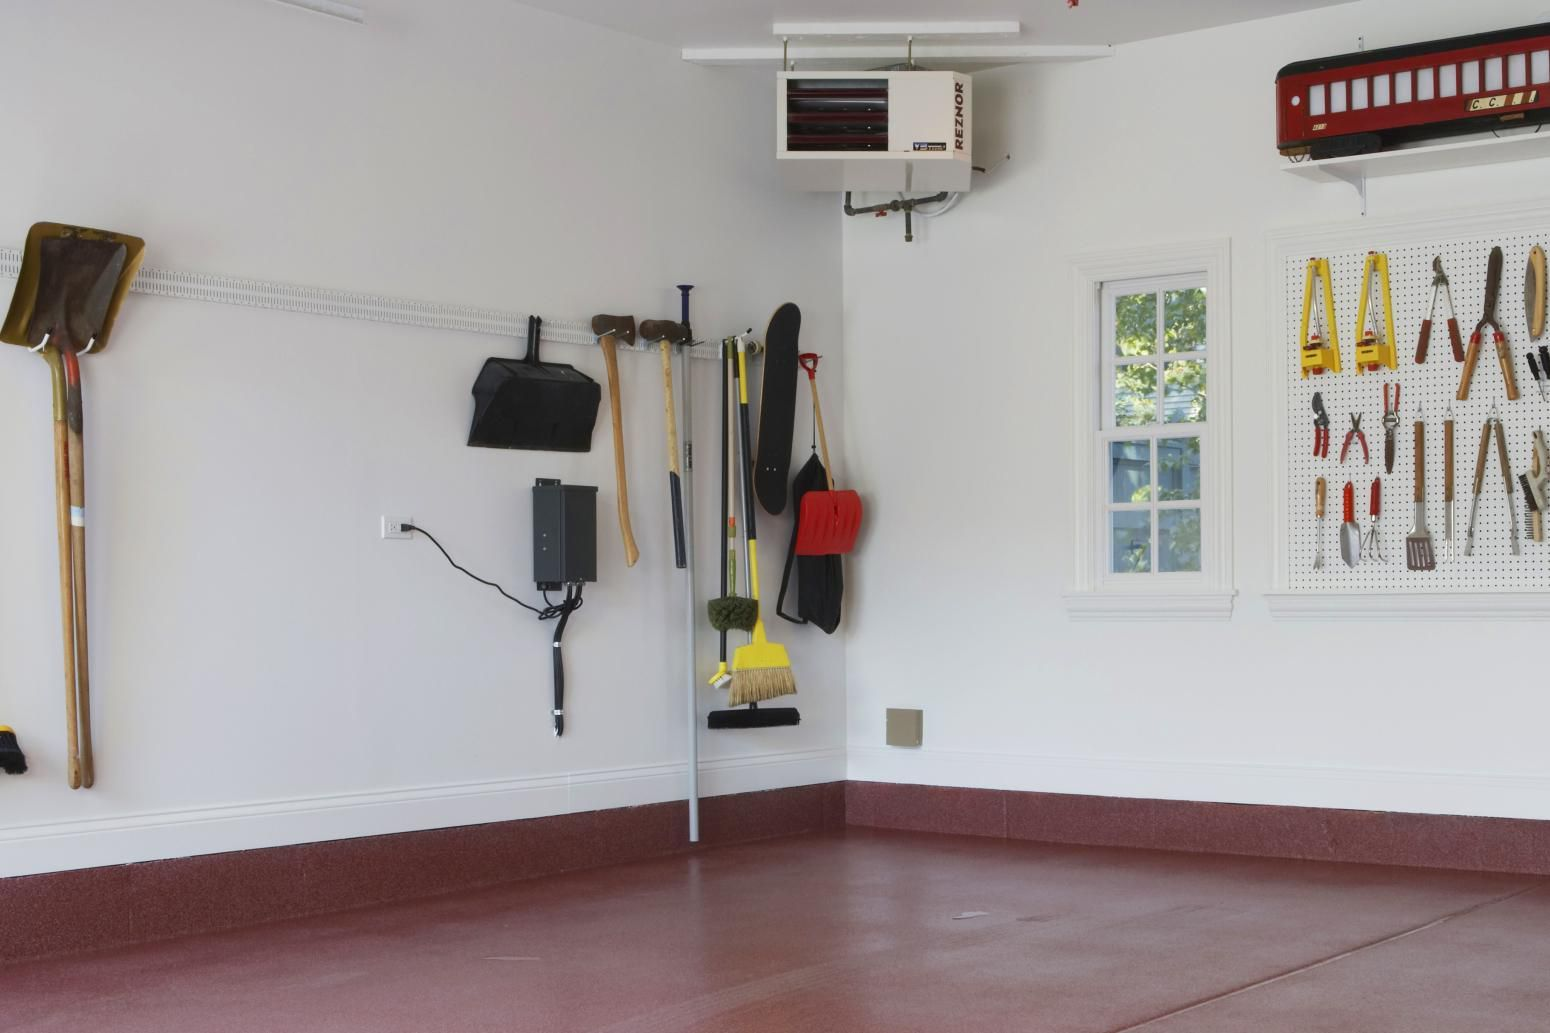 Learn How to Heat up Your Garage During Winter (With